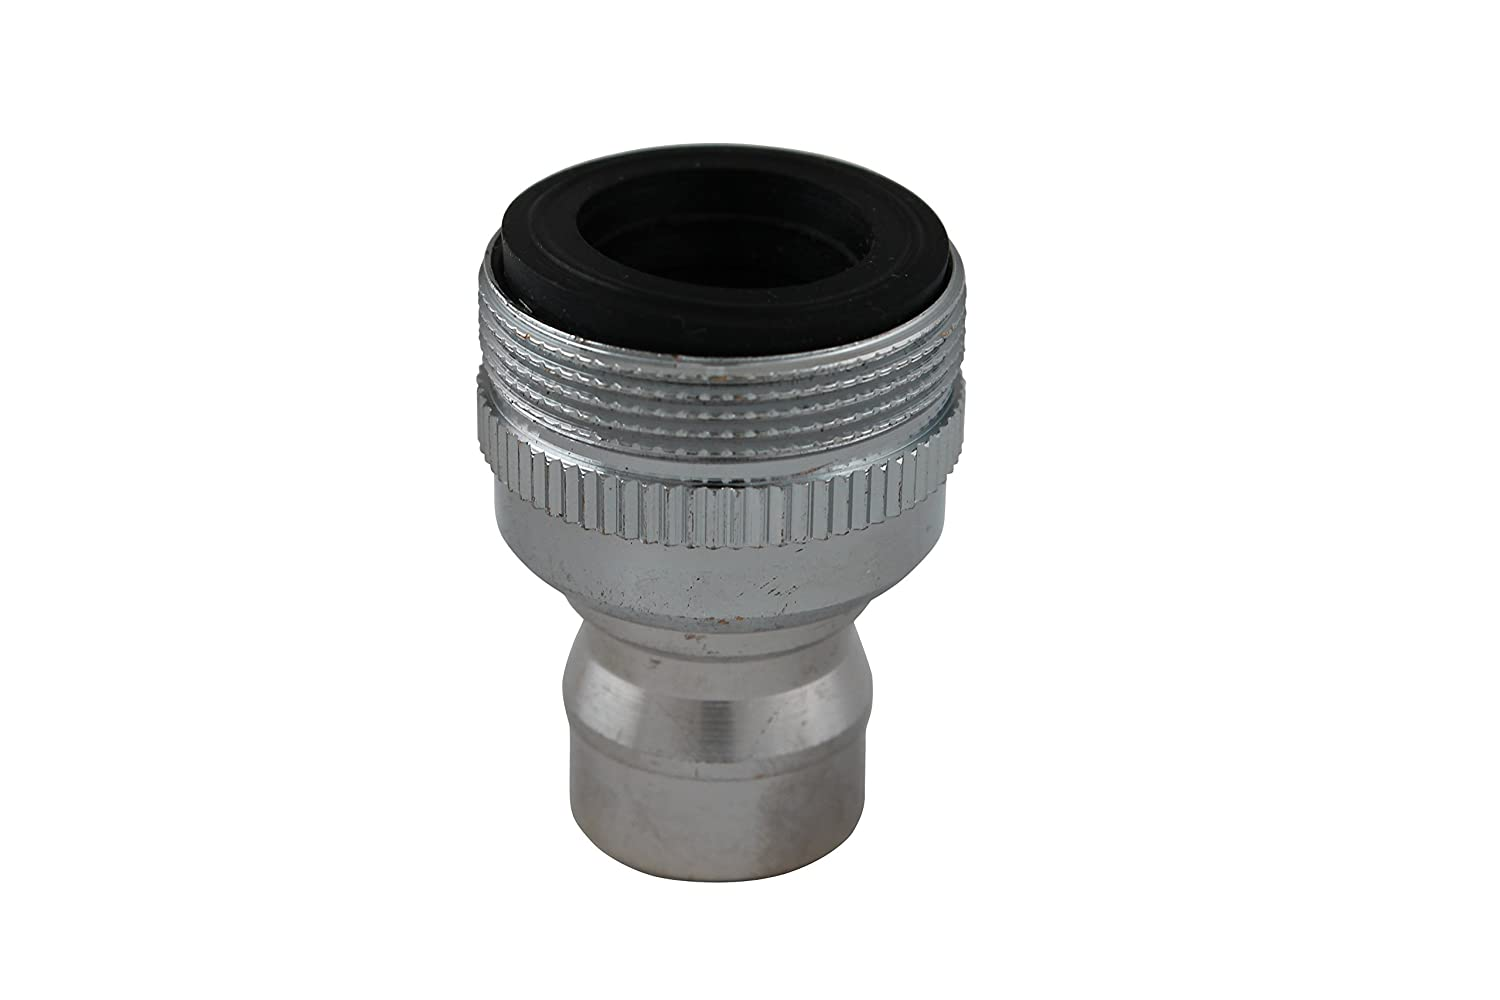 Keeney PP800-6 Plumb Pak Faucet Aerator Adapter With Small Diameter Nipple, Chrome Plated